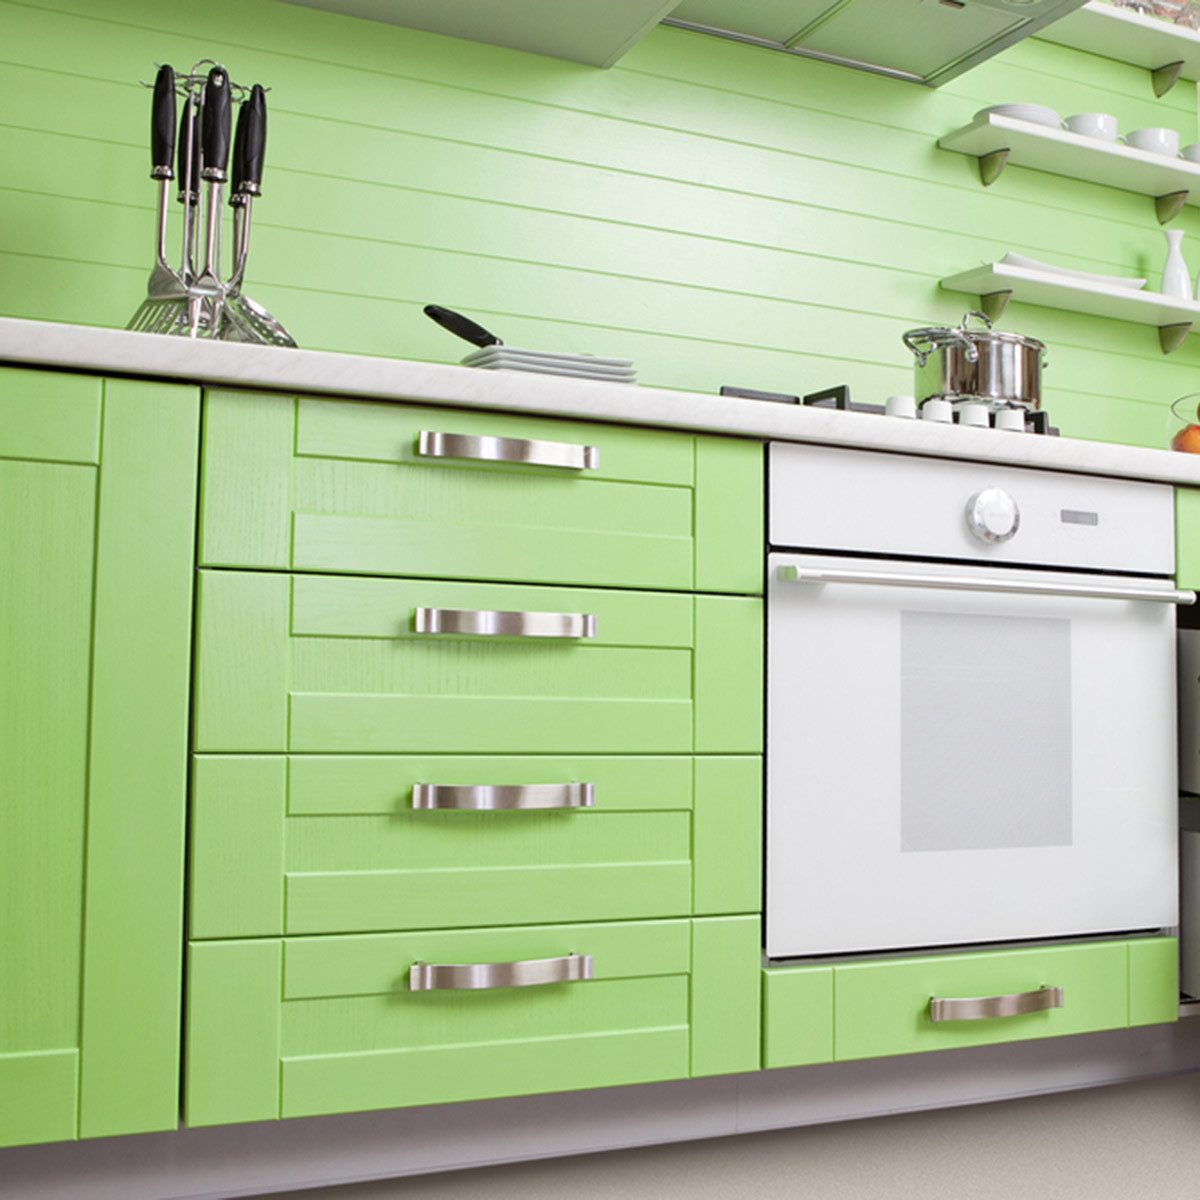 Popular Kitchen Cabinet Colors: Farmhouse Green